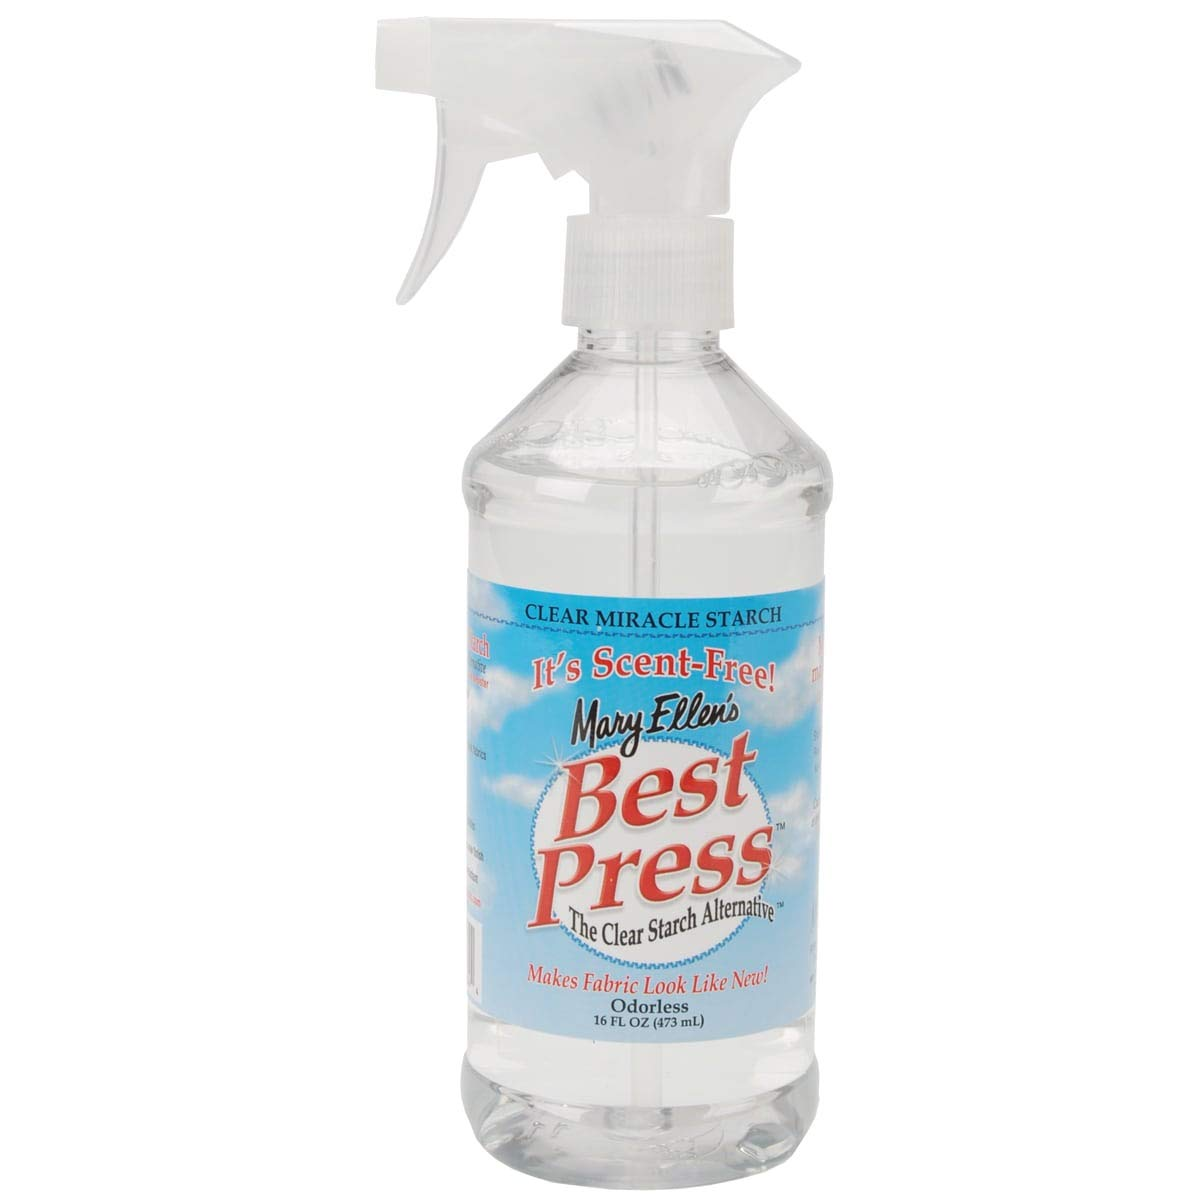 Mary Ellen's Best Press, Clear Starch and Sizing Alternative, Scent-Free, 16.9 Ounce by Mary Ellen Products